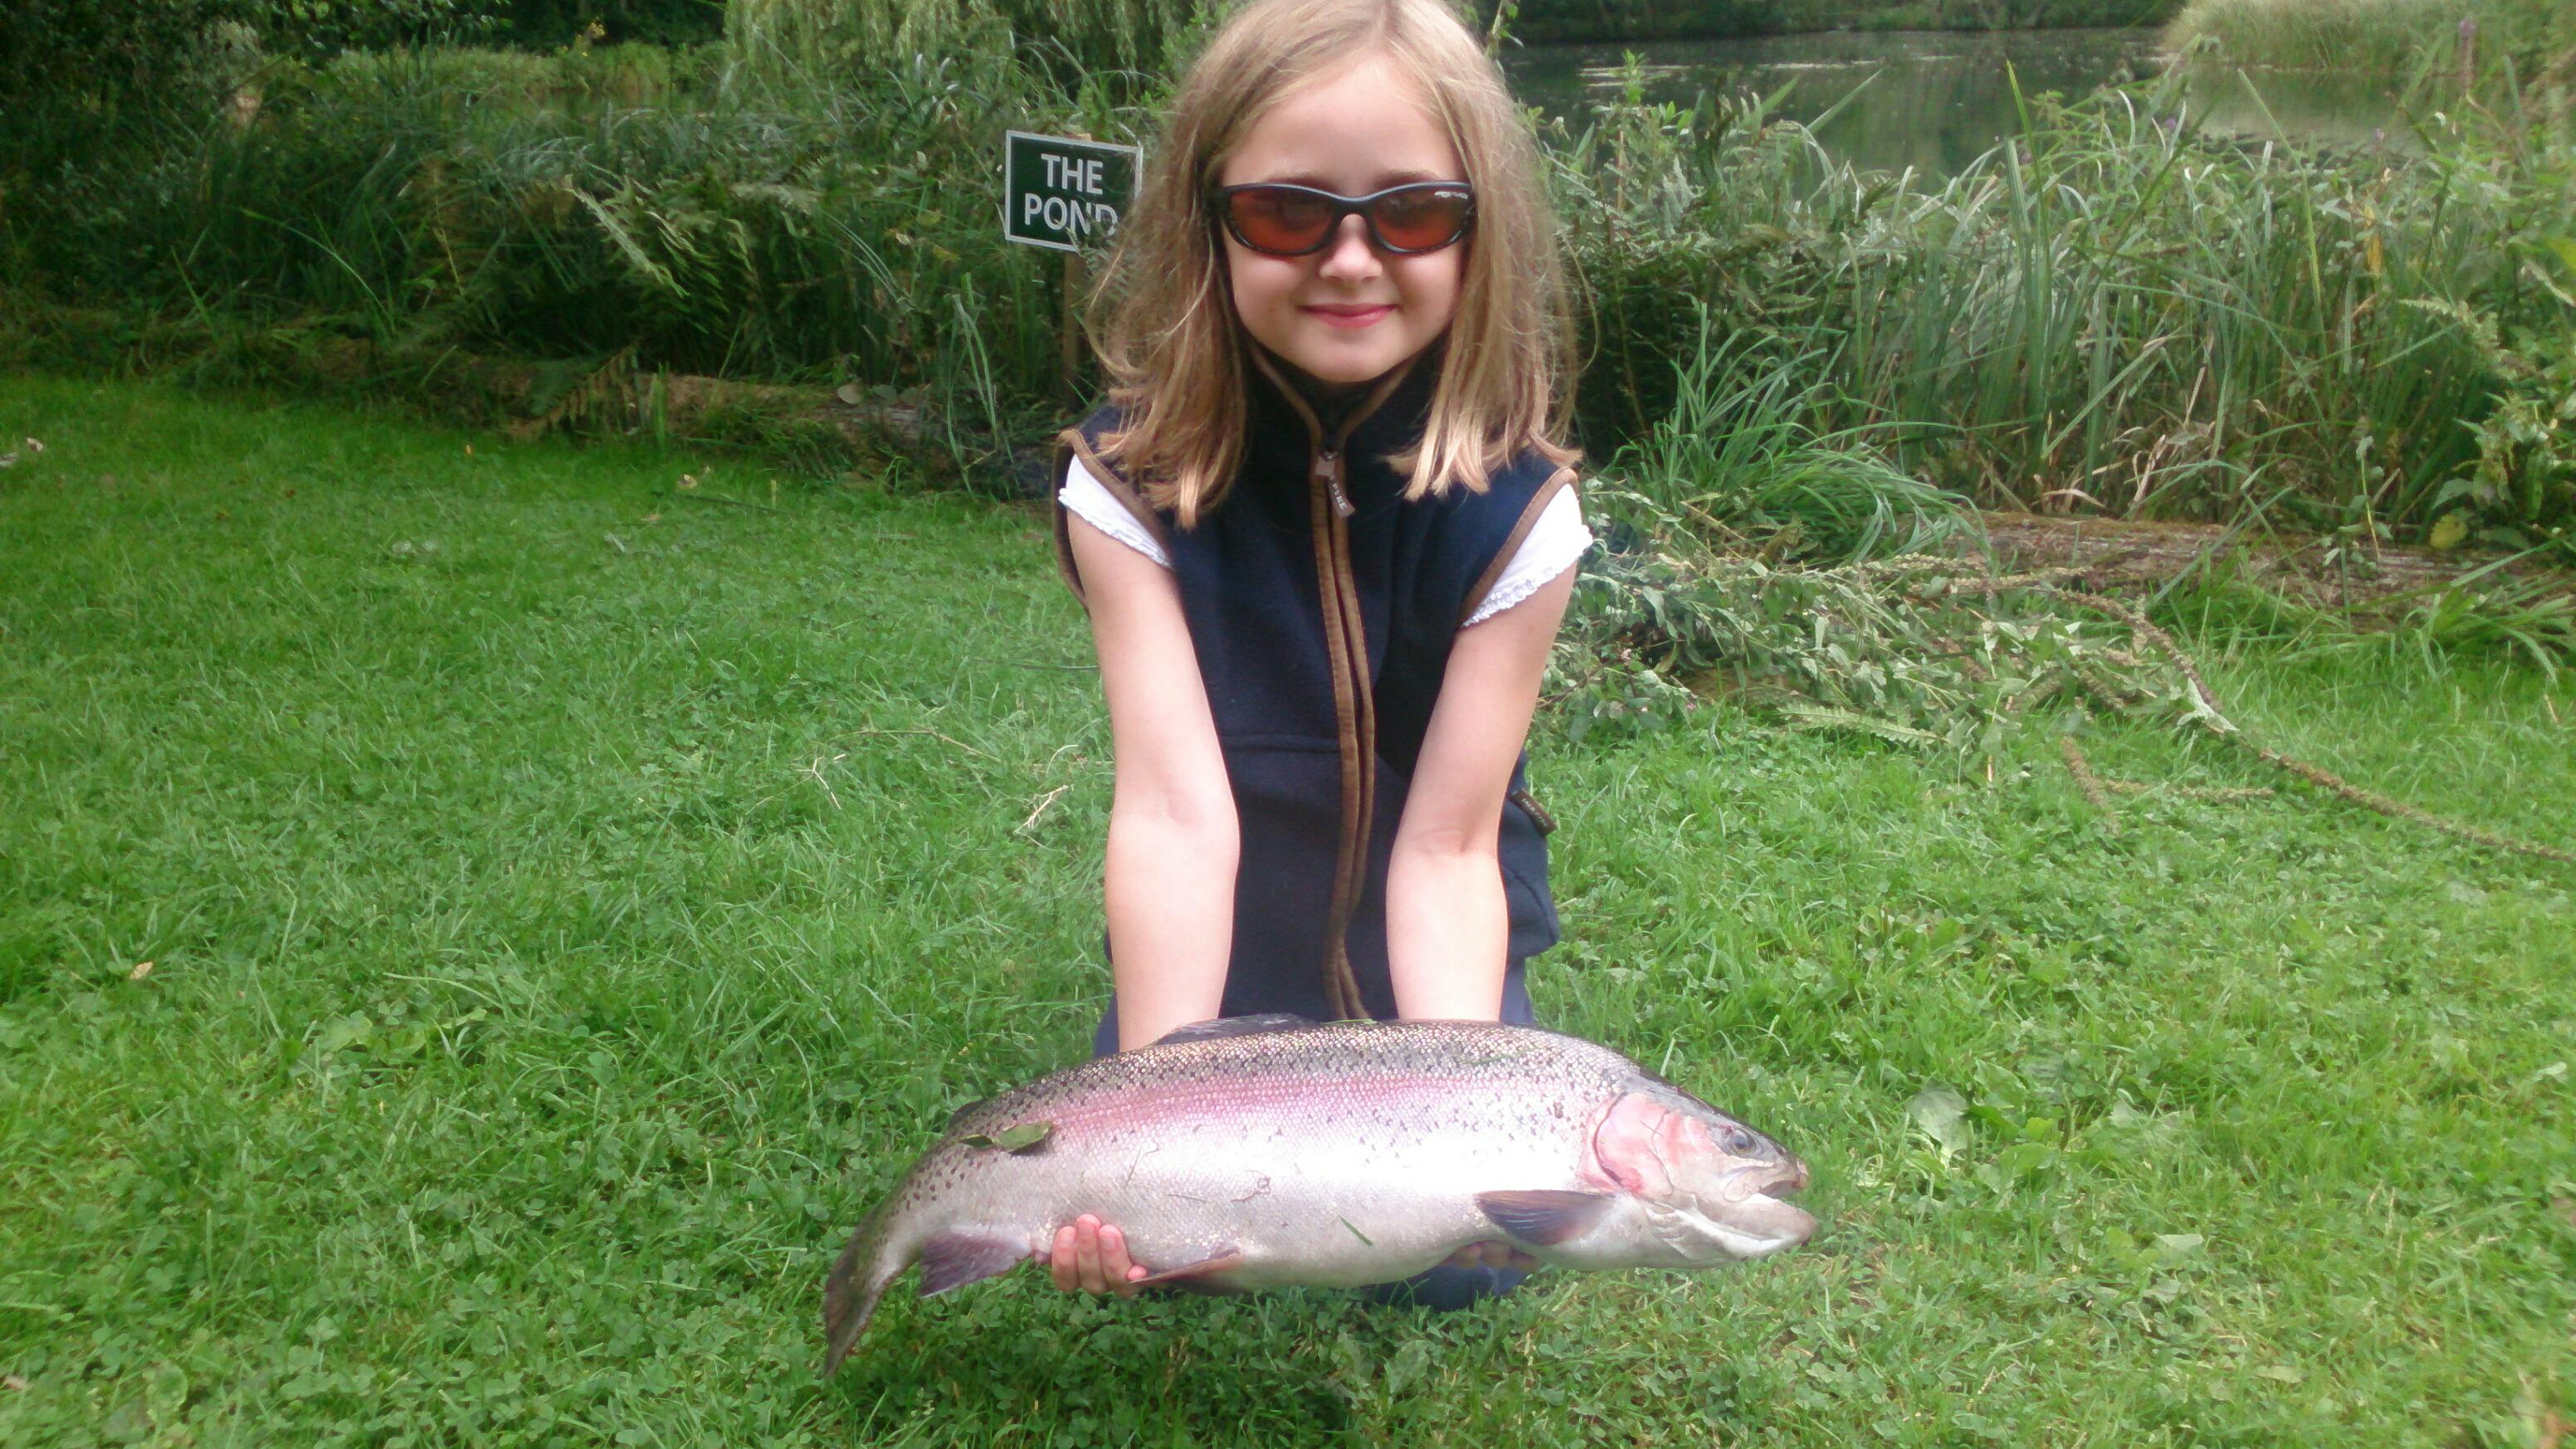 8 year old Amelia Martin landed an 8lb 8oz beautiful trout